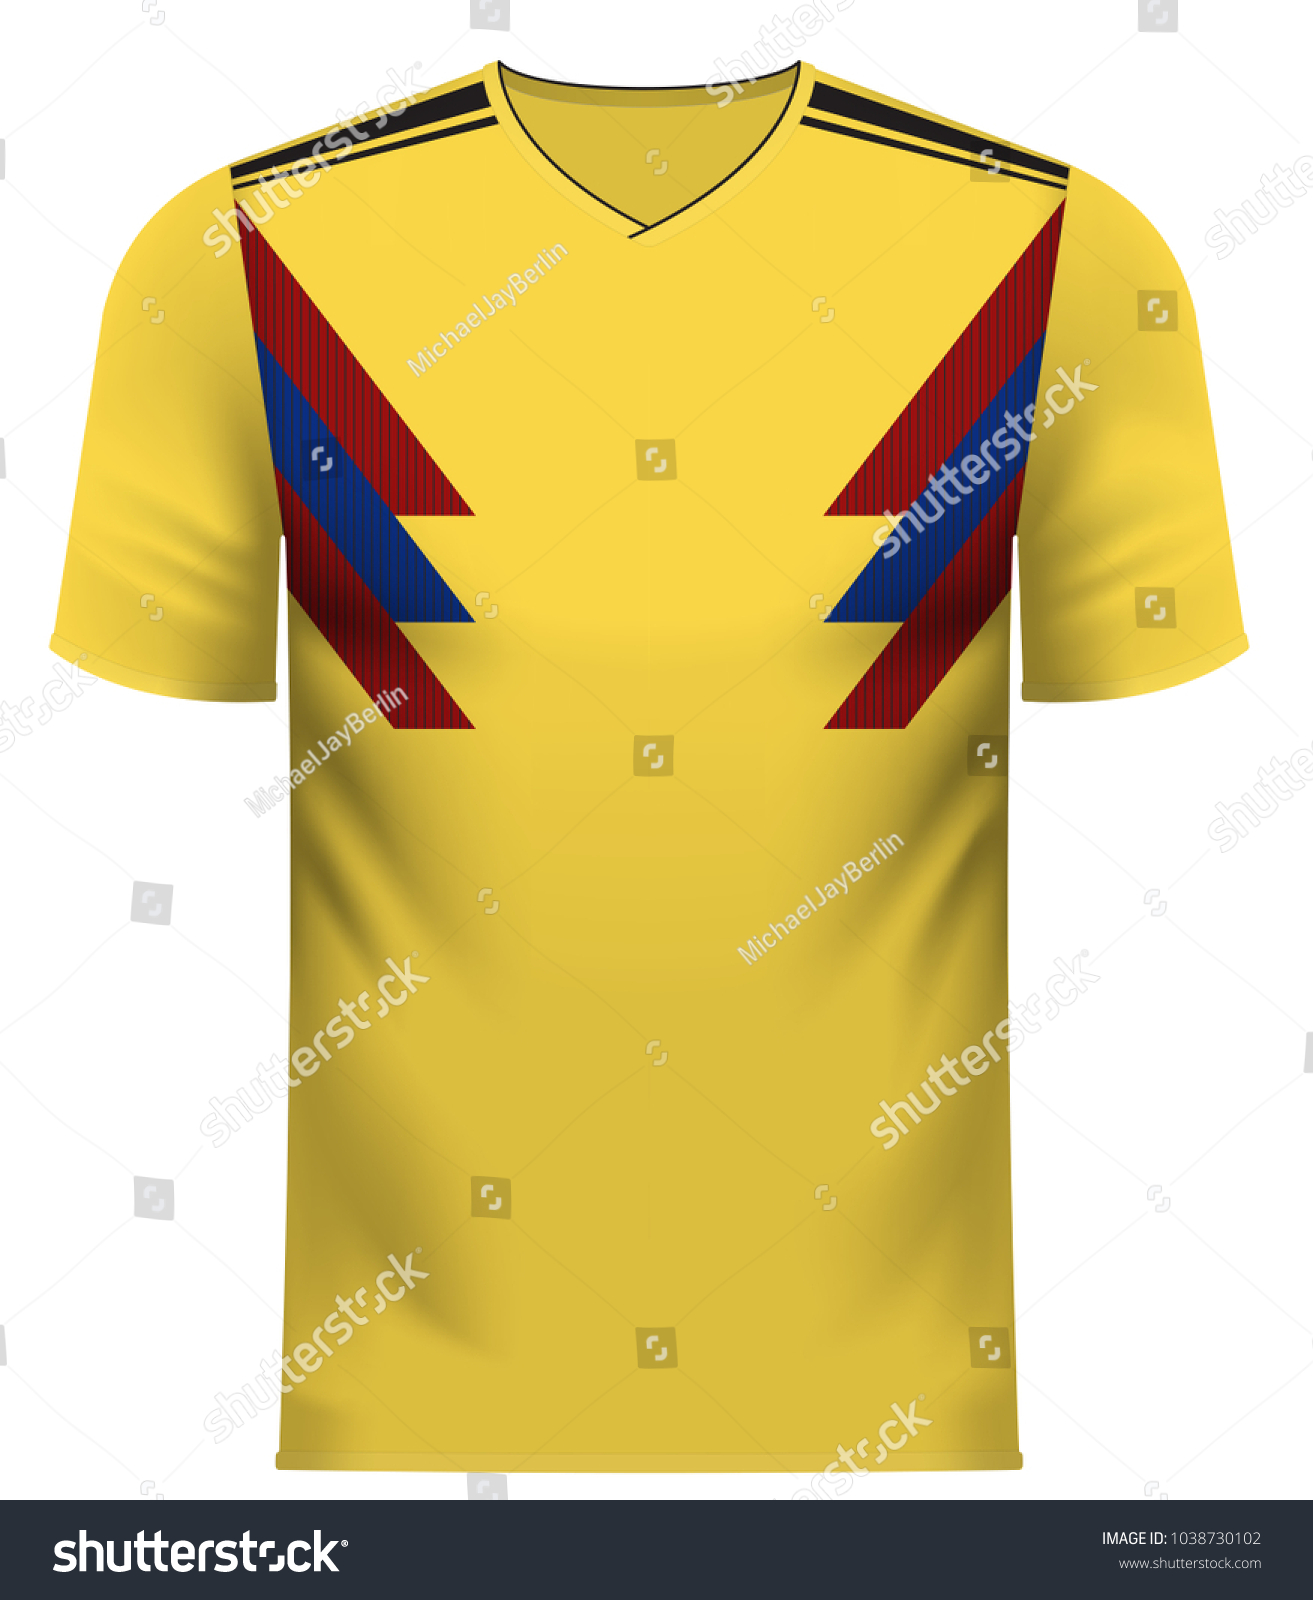 9252ea403 Colombia national soccer team shirt in generic country colors for fan  apparel.